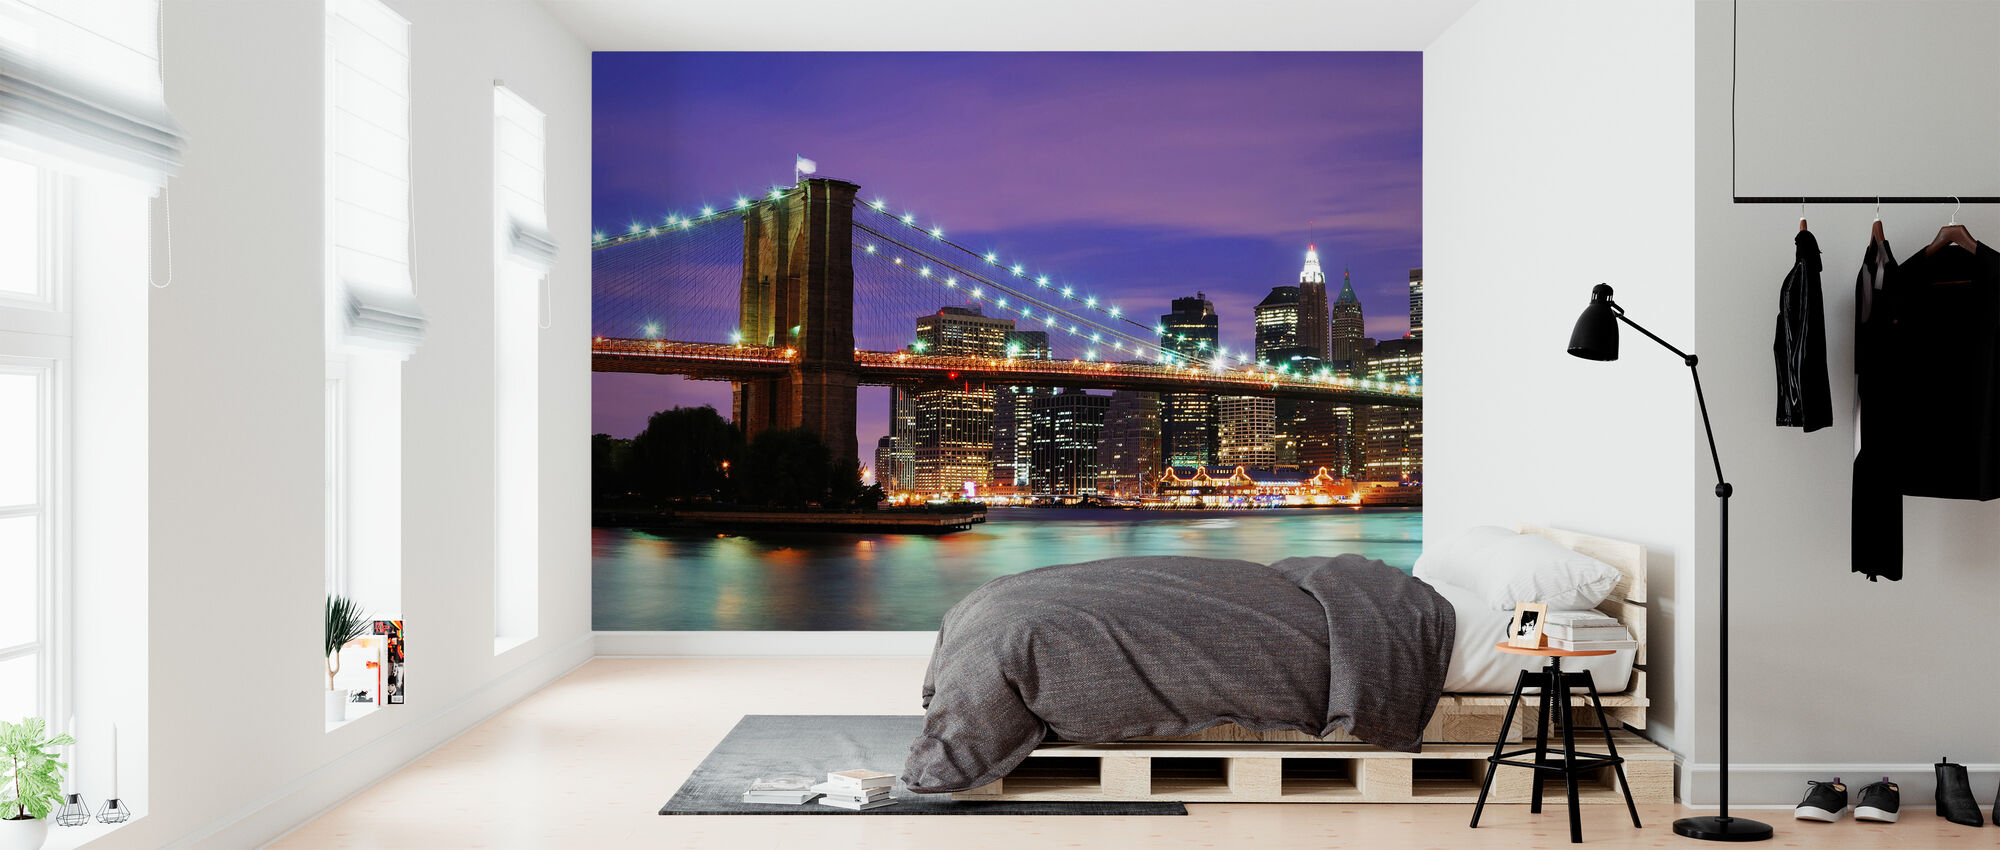 Brooklyn Bridge at Night - Wallpaper - Bedroom